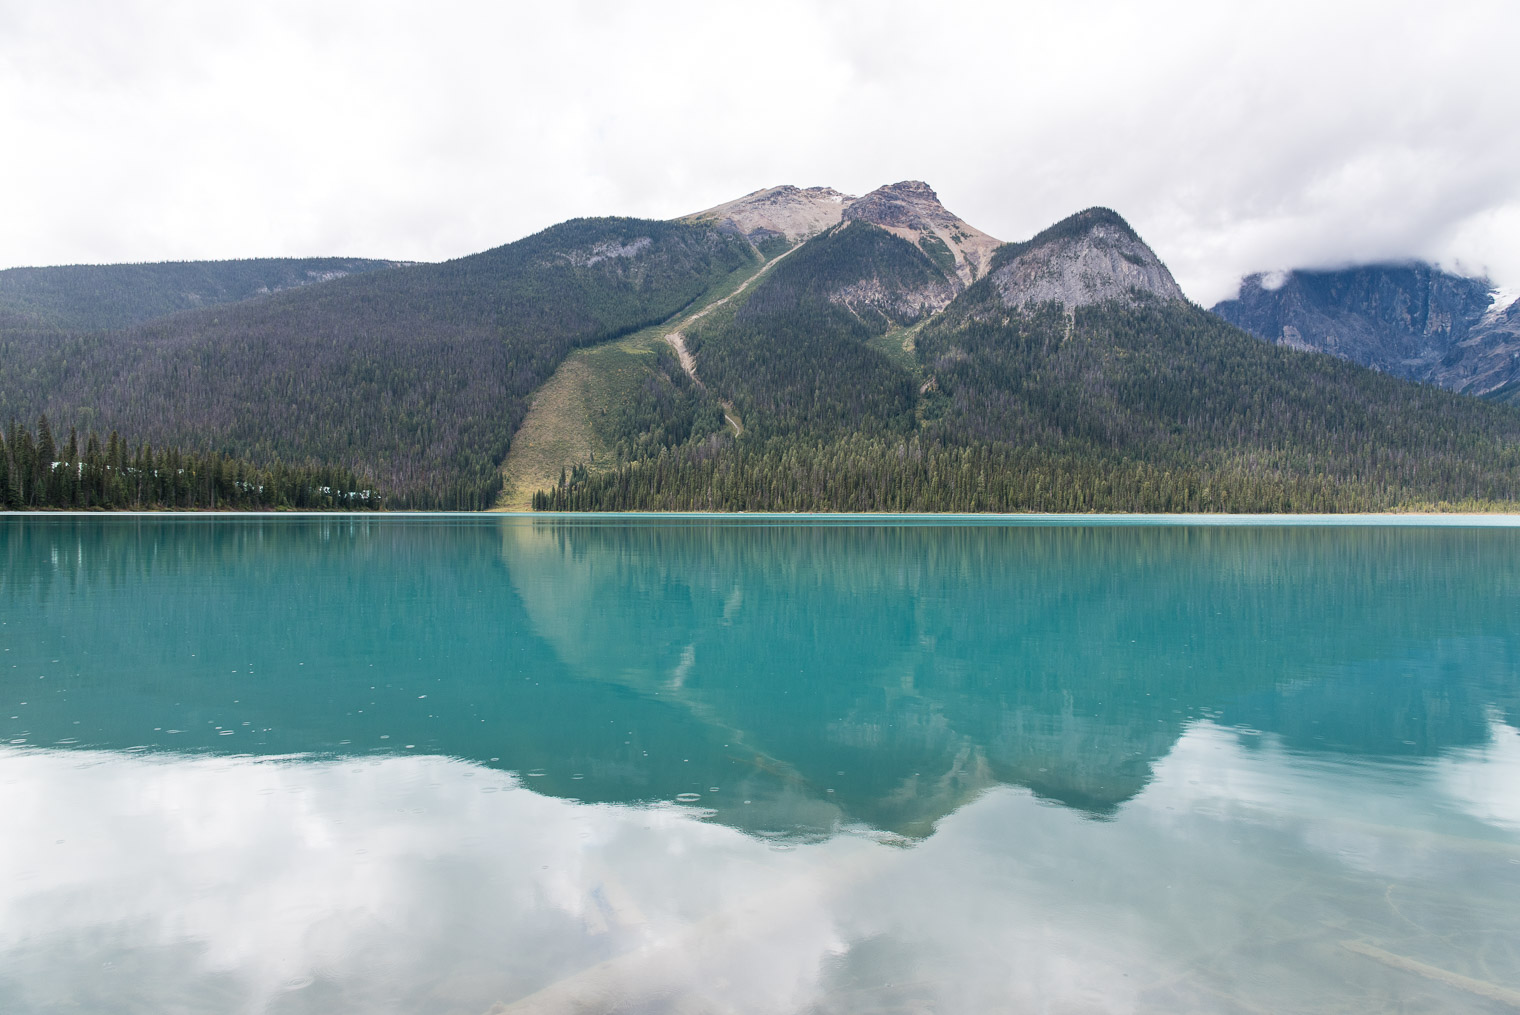 Emerald Lake, British Columbia, Keeping With the Times